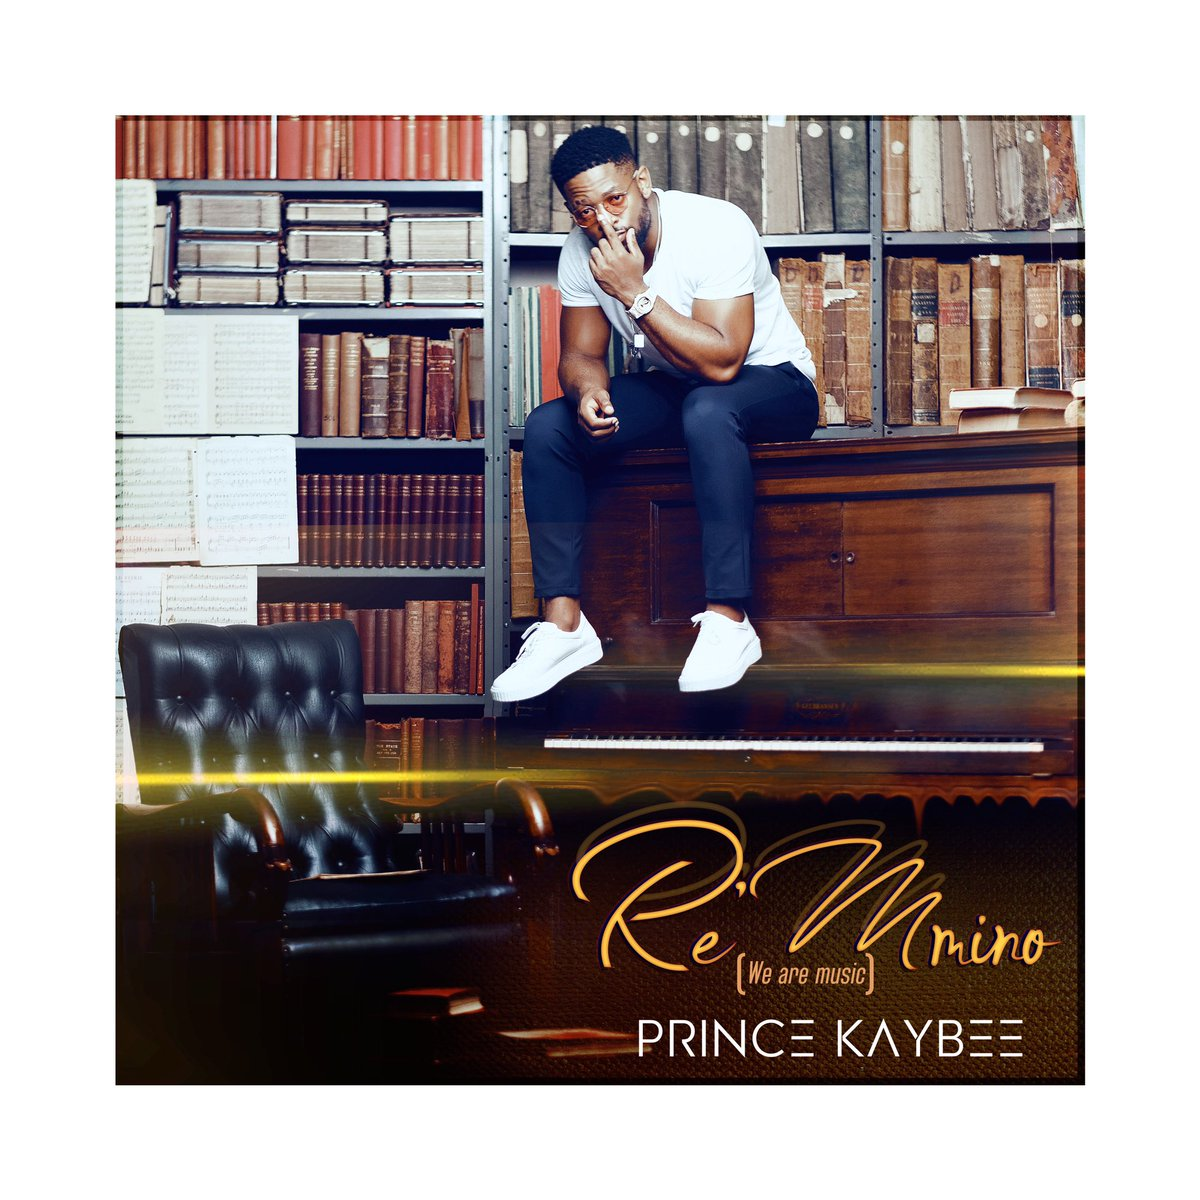 Prince Kaybee Drops Artwork of Re Mmino (We are Music) Album